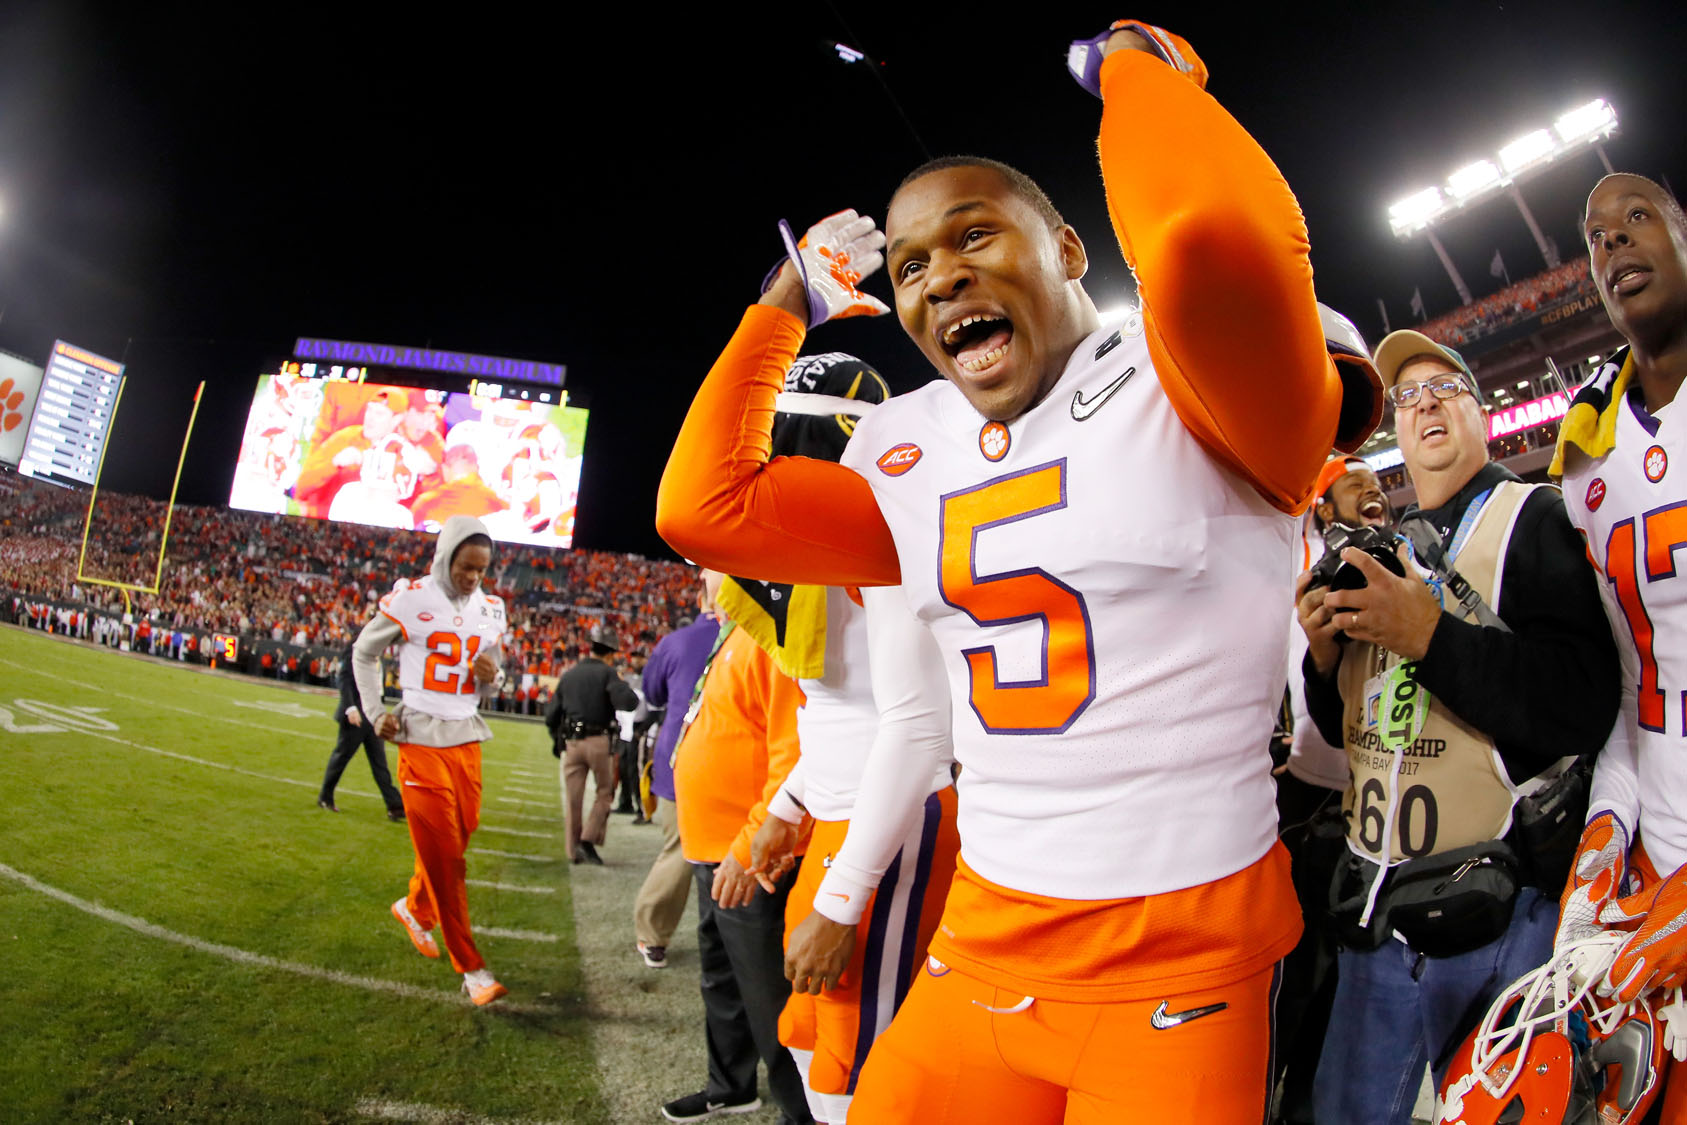 Clemson beats Alabama for national college football title